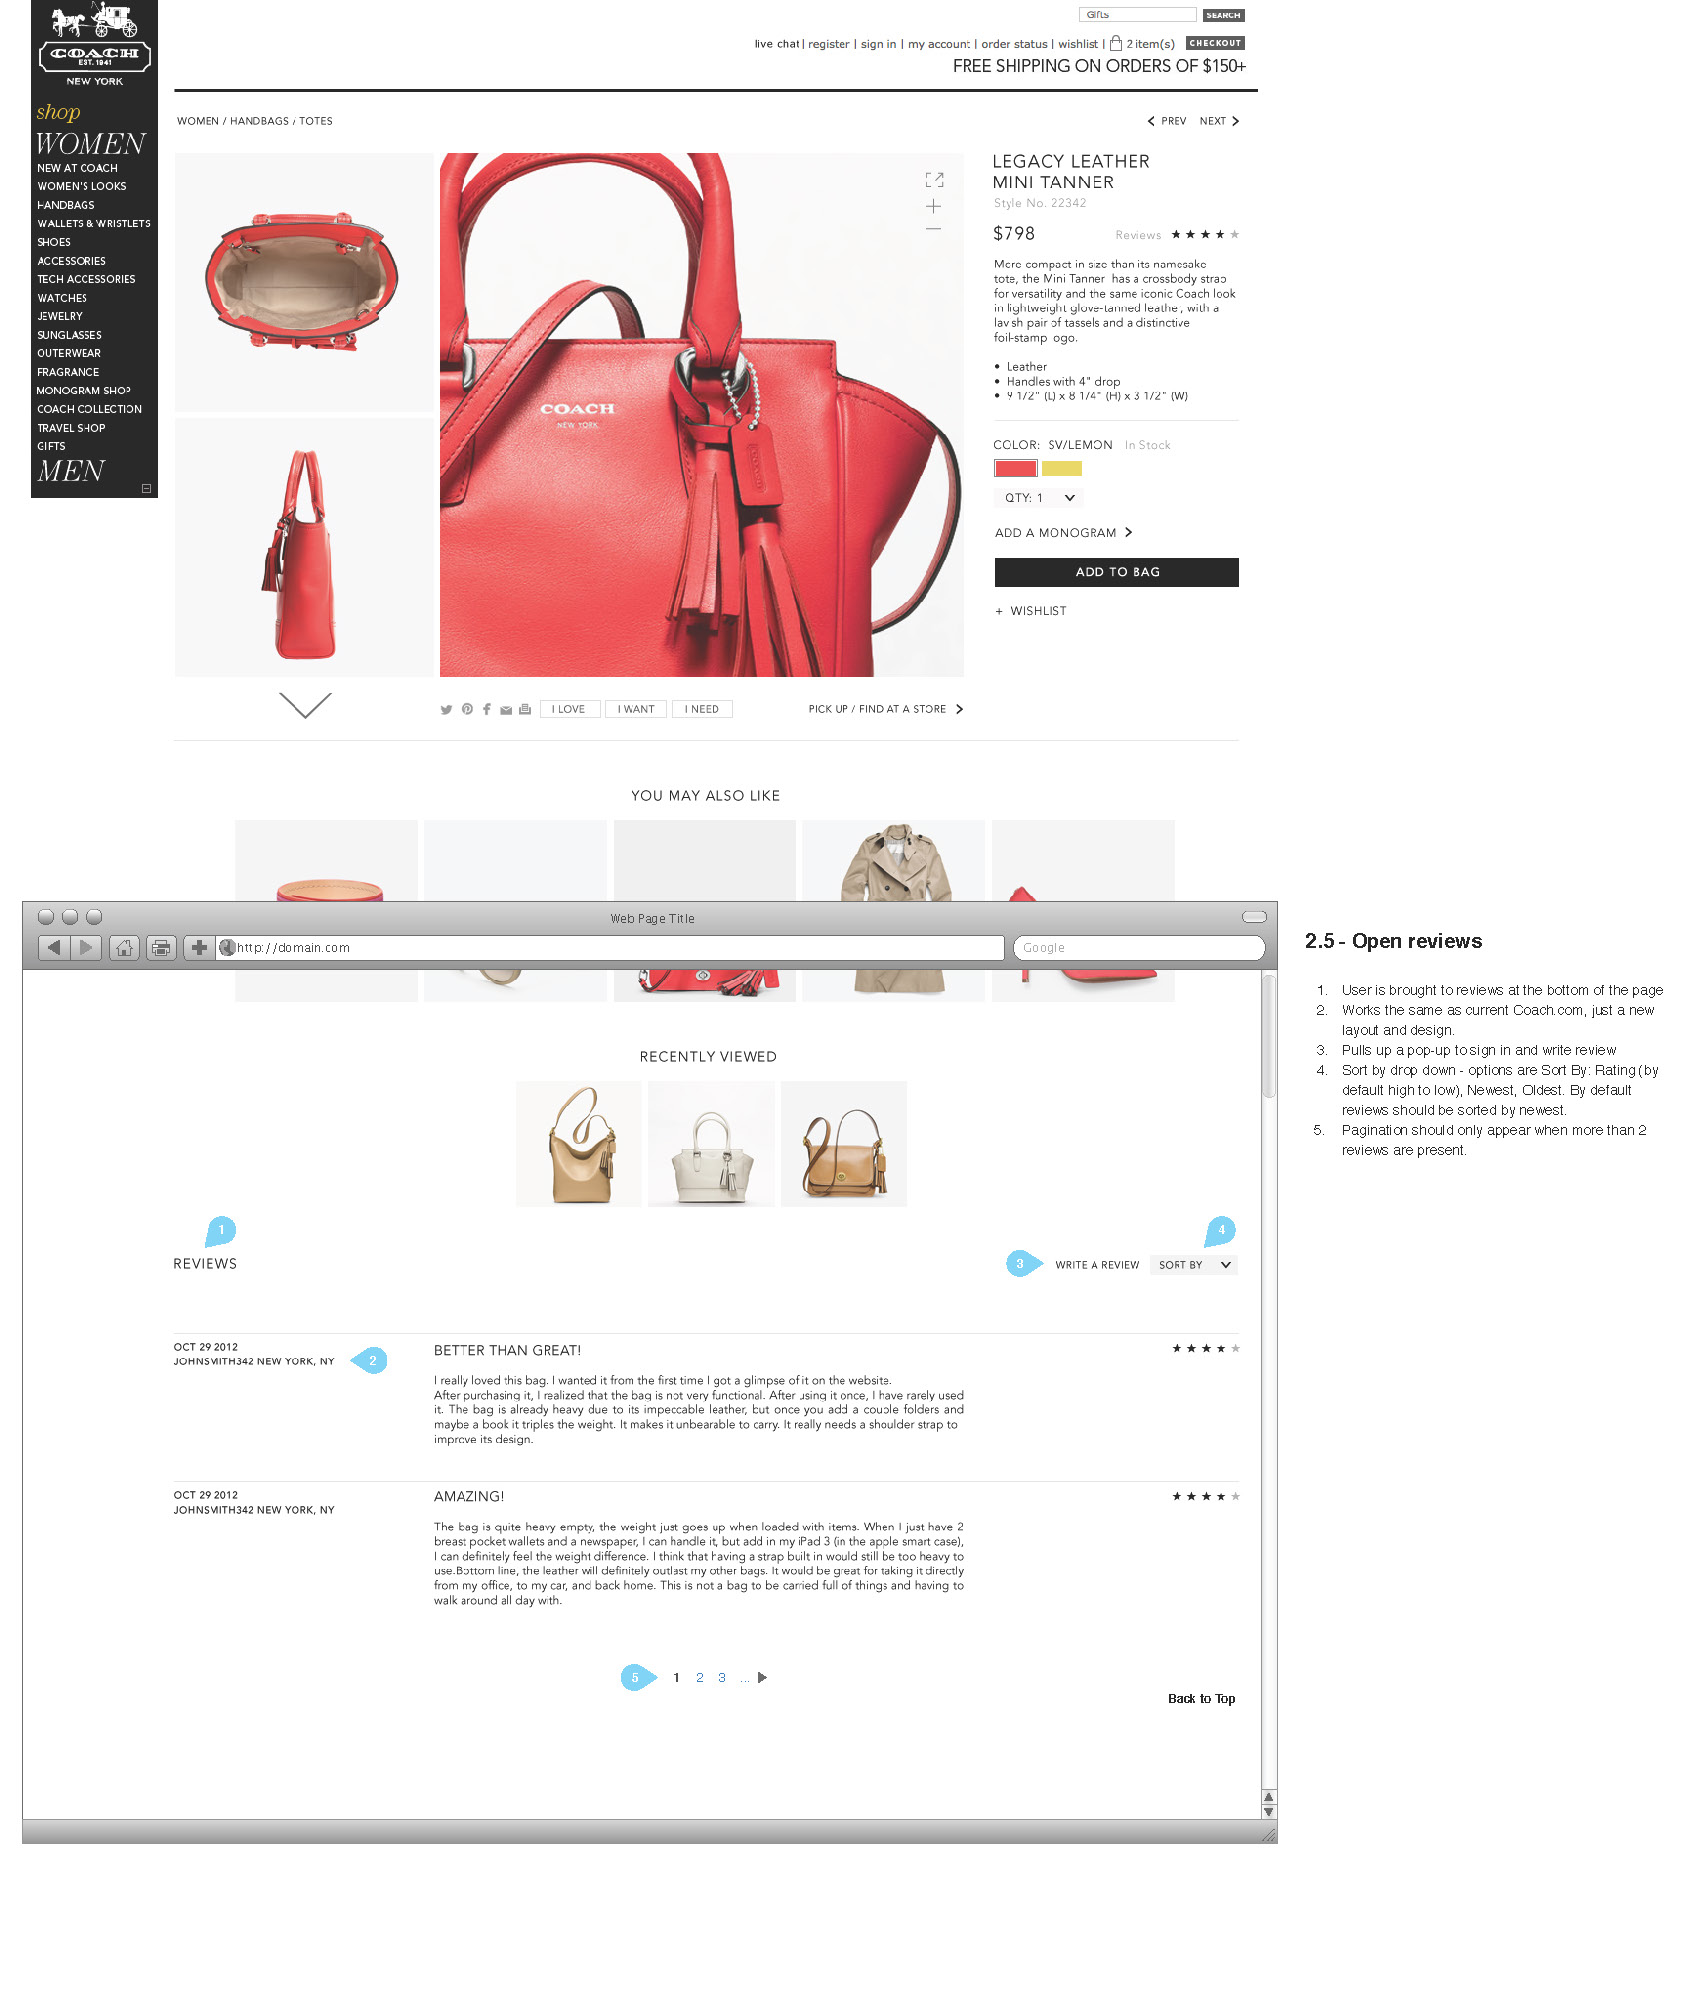 Productpage-v2.4_Page_5.jpg